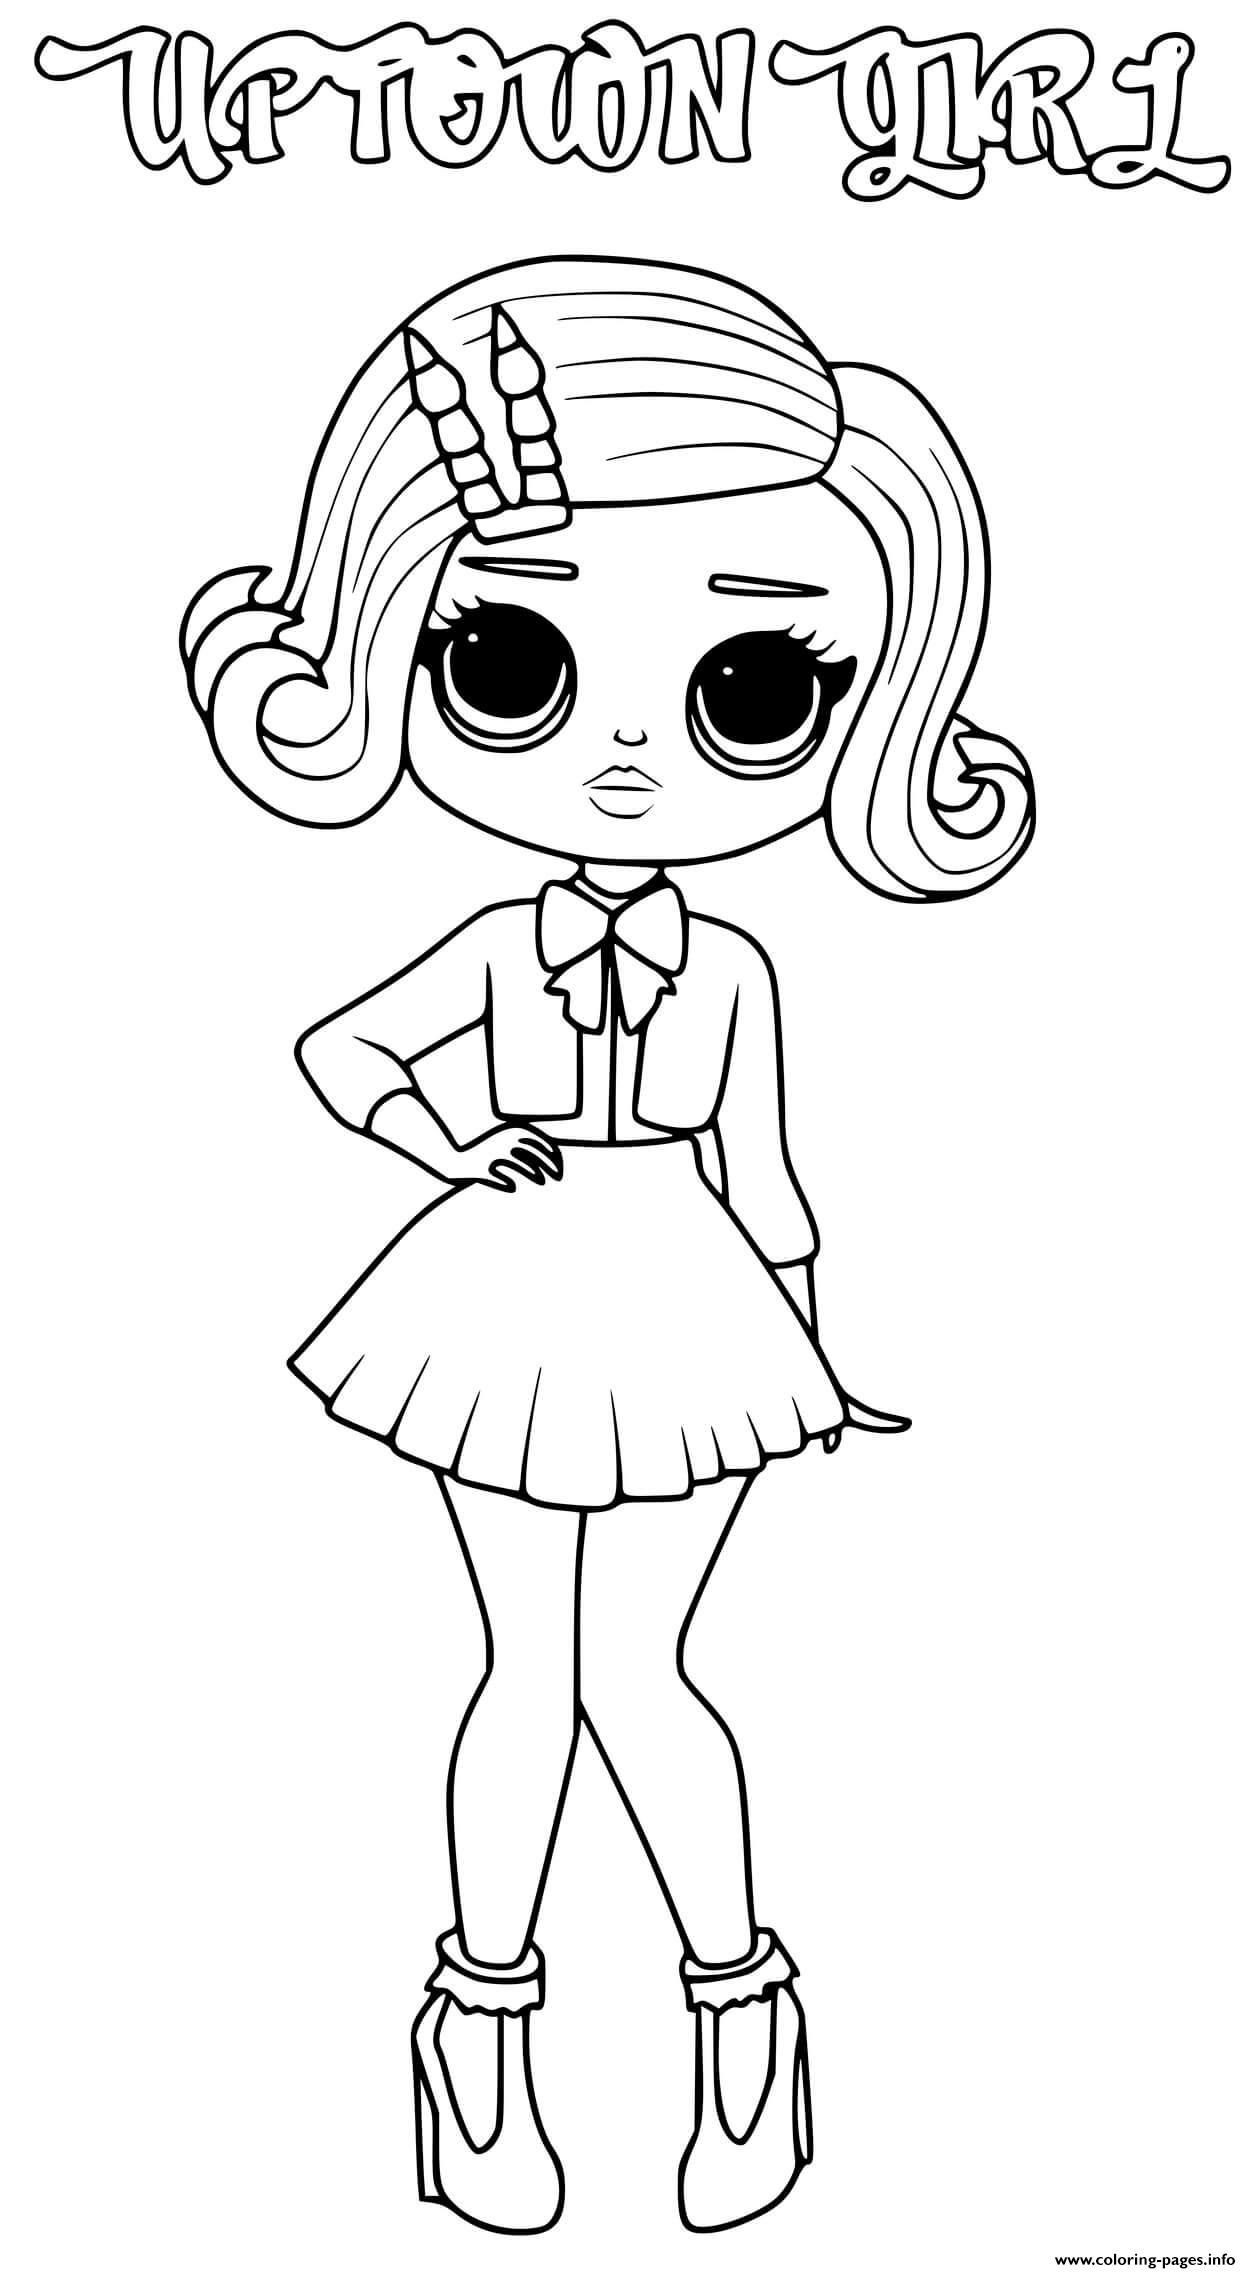 Print Uptown Girl Lol Omg Coloring Pages In 2021 Unicorn Coloring Pages Coloring Books Coloring Book Pages